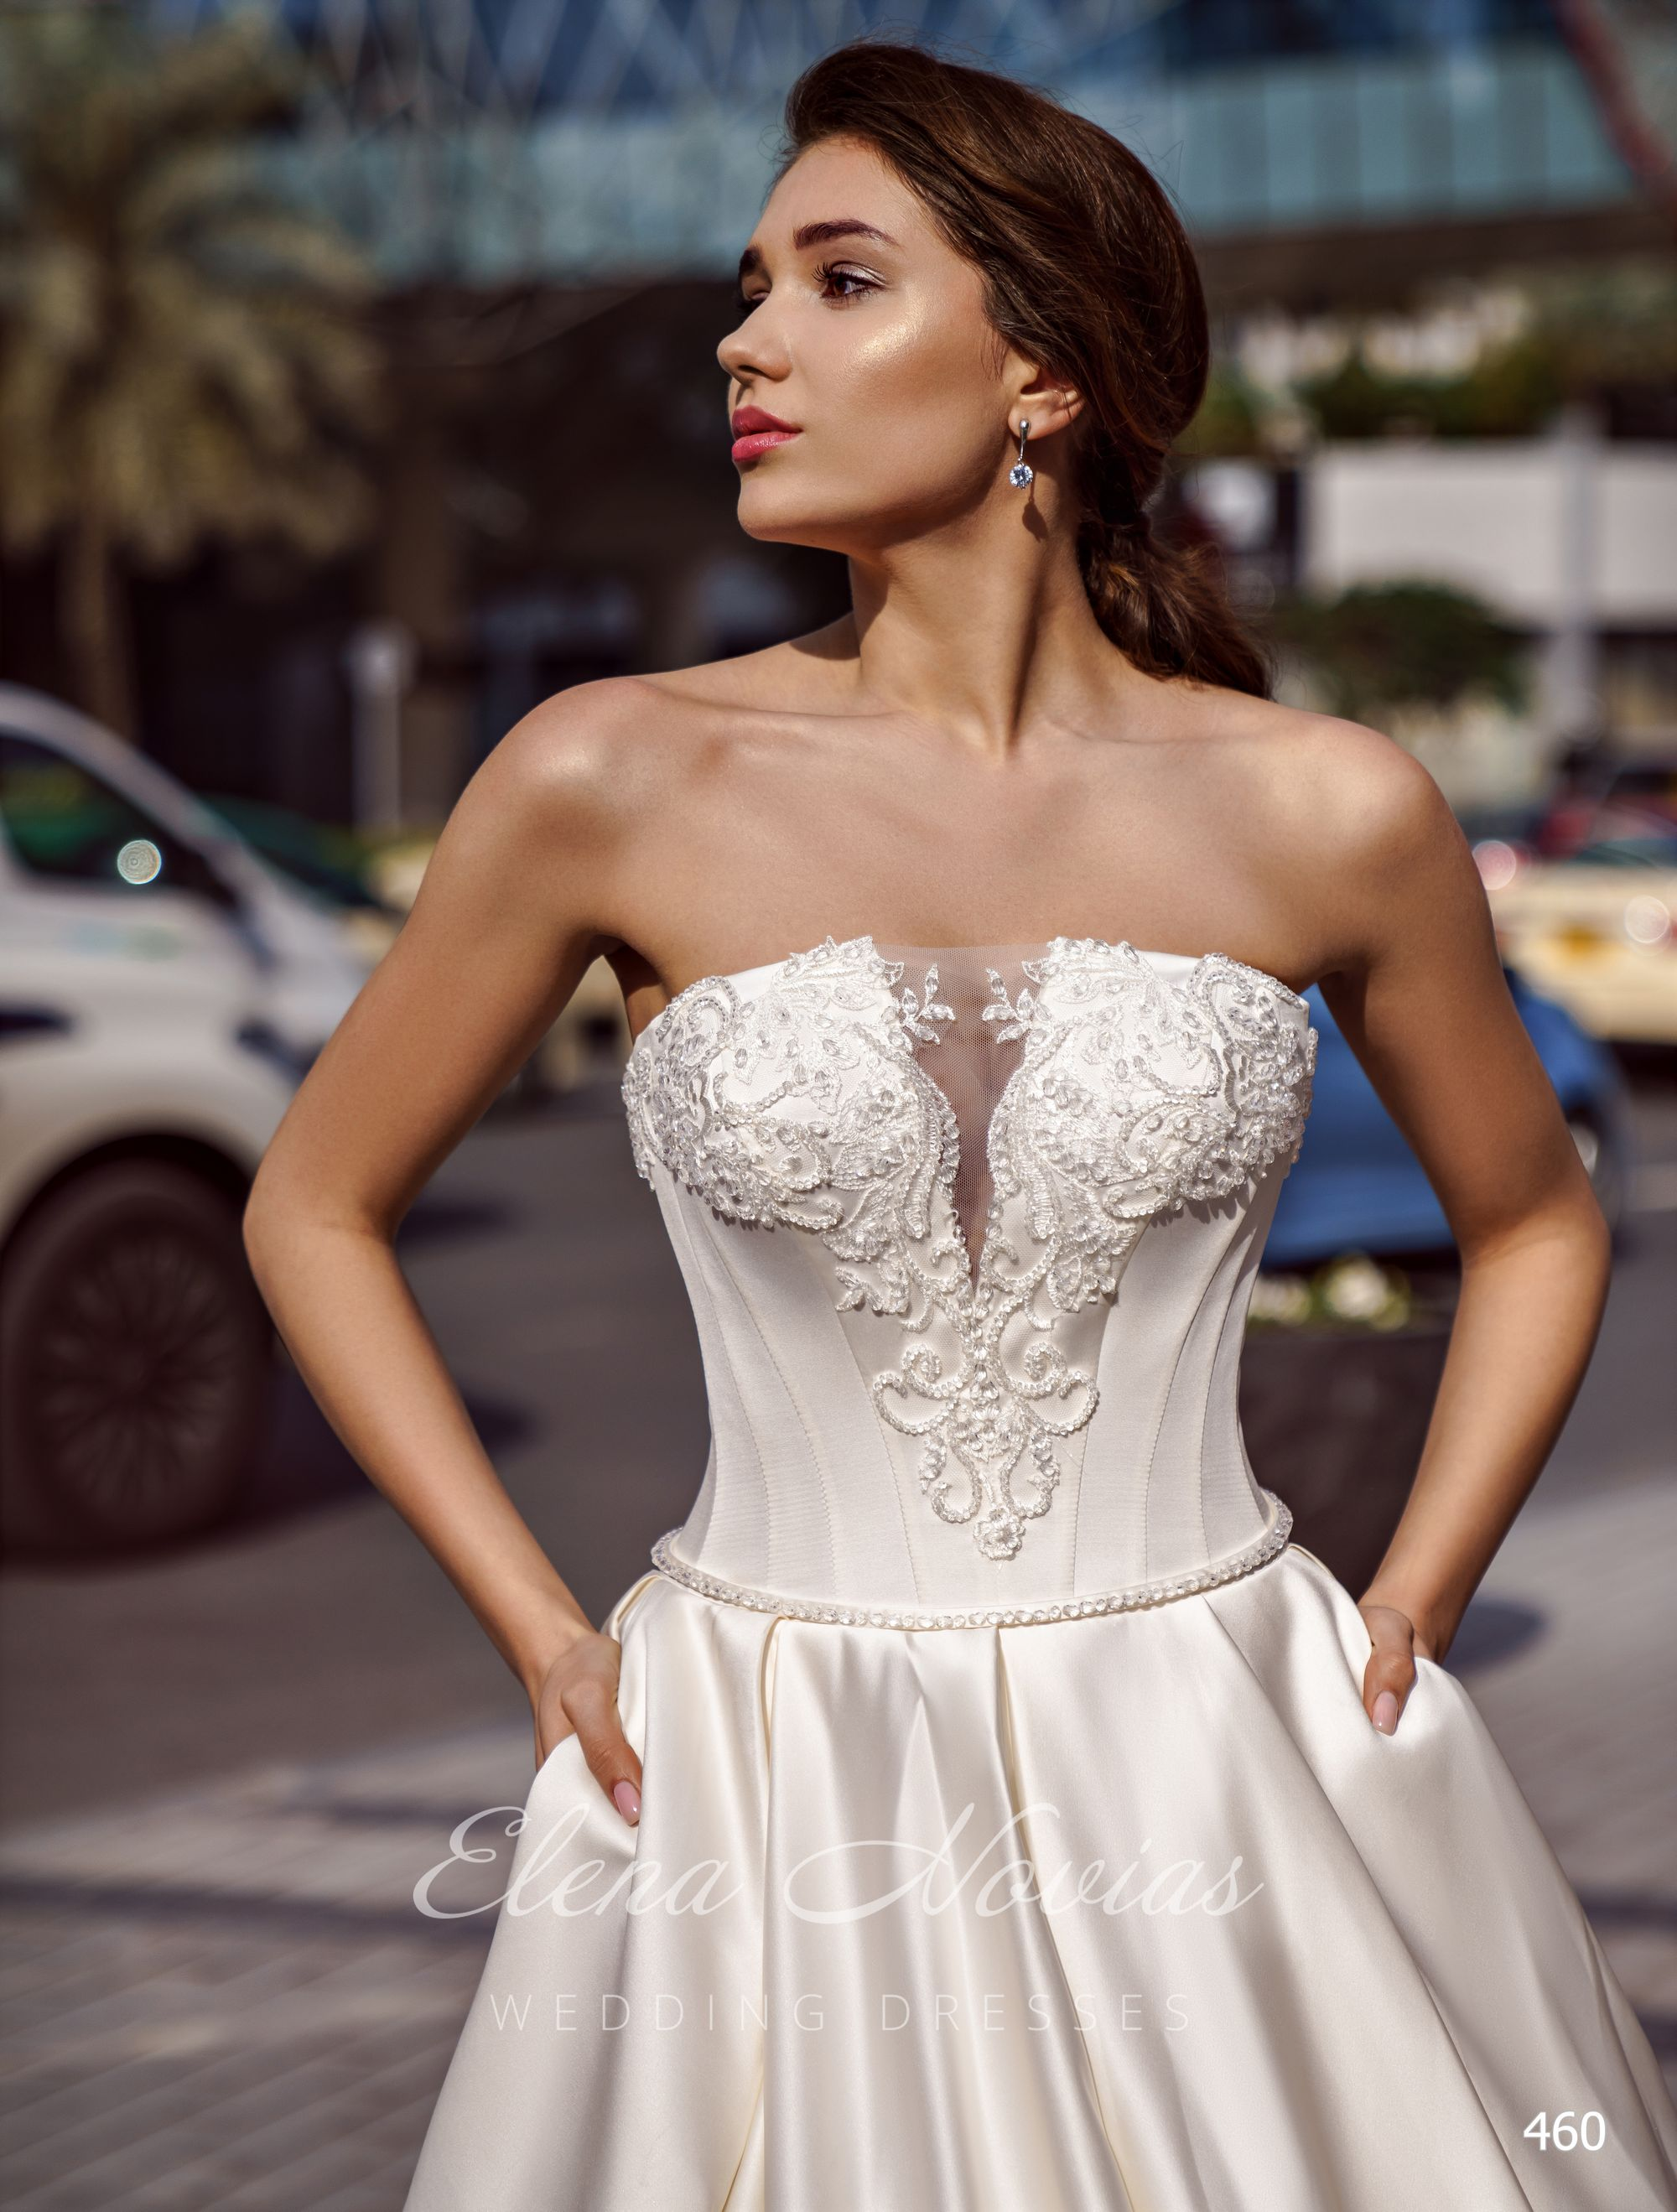 Wedding dresses 460 1